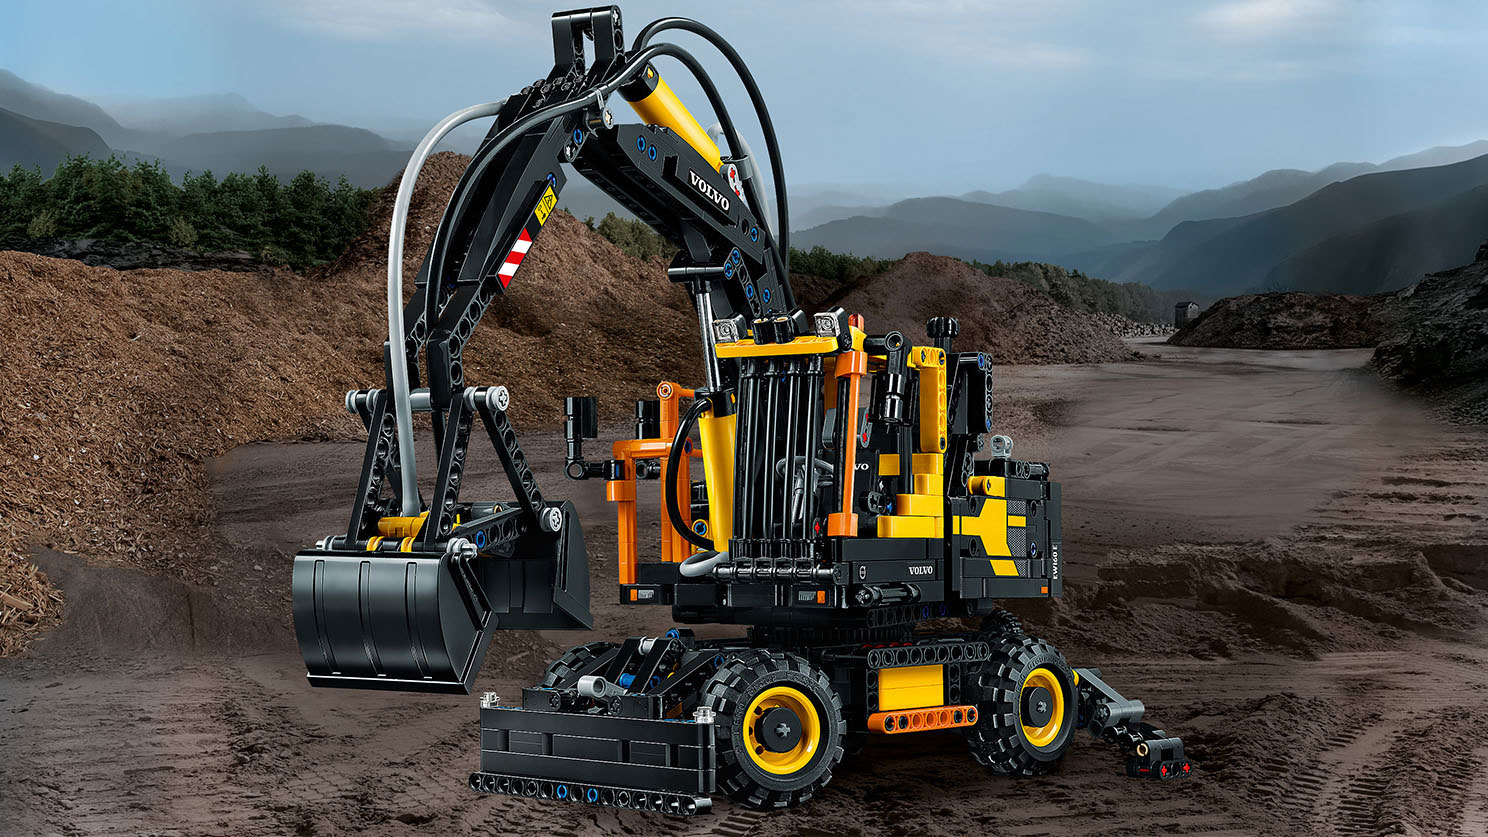 1st day of construction gifts lego volvo ew160e wheeled excavator 2 in 1 technic set. Black Bedroom Furniture Sets. Home Design Ideas